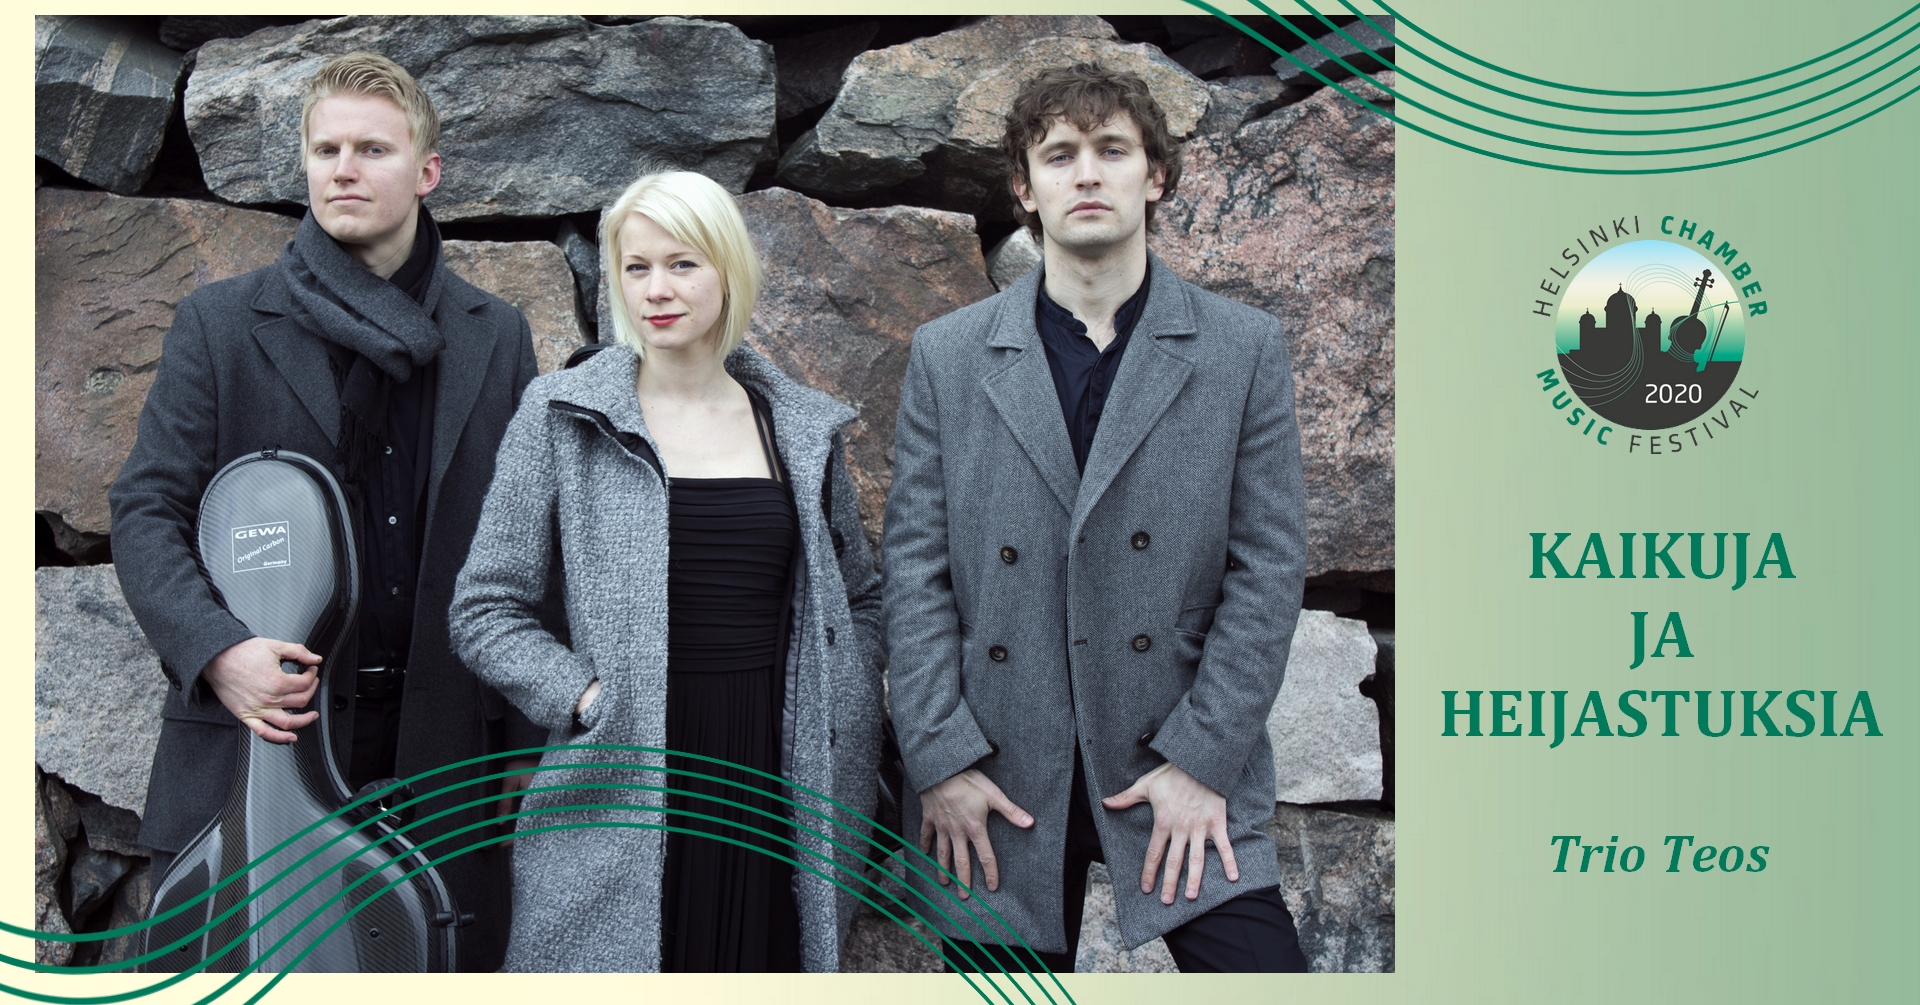 Link to event Helsinki Chamber Music Festival: Echoes and Reflections